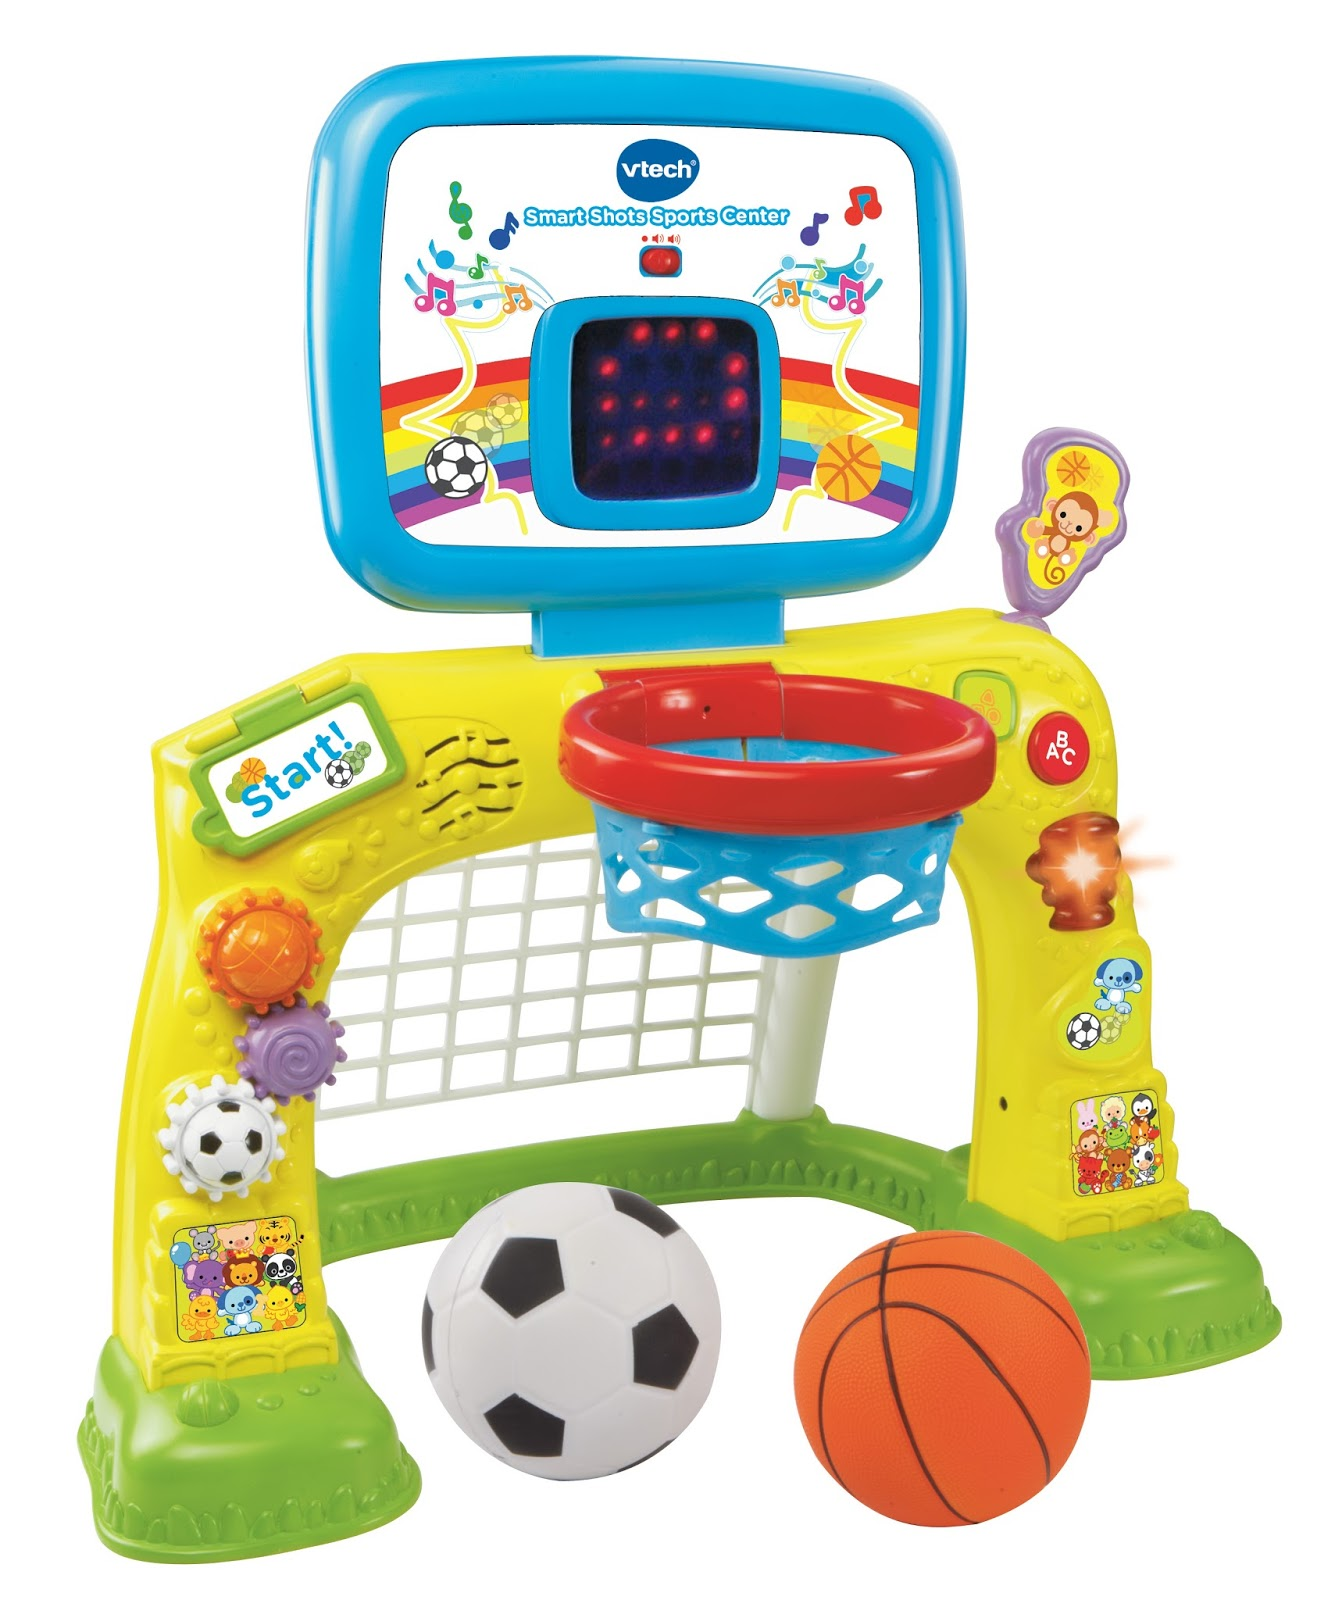 Toddler Toys Sports : Holiday gift guide vtech toys we love the naptime